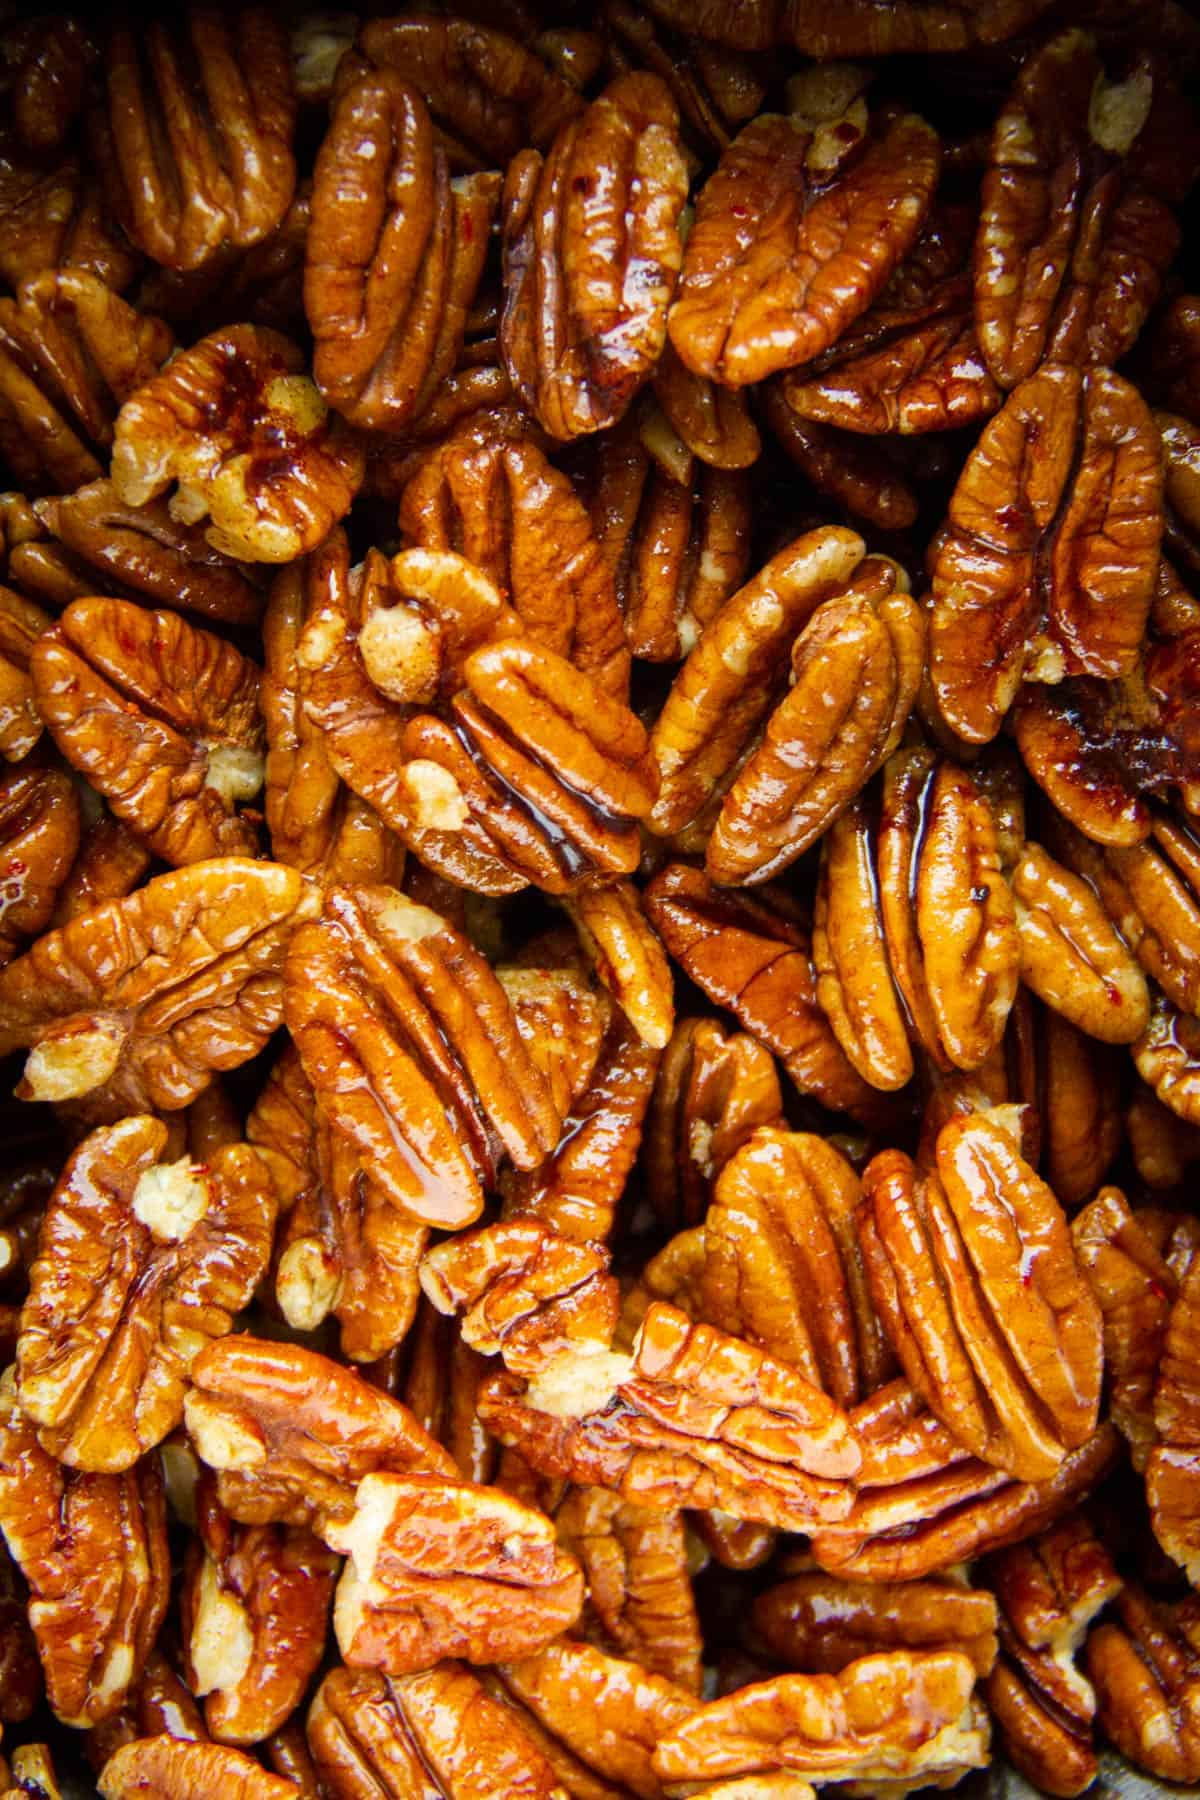 A close-up of a pecans on a tray.